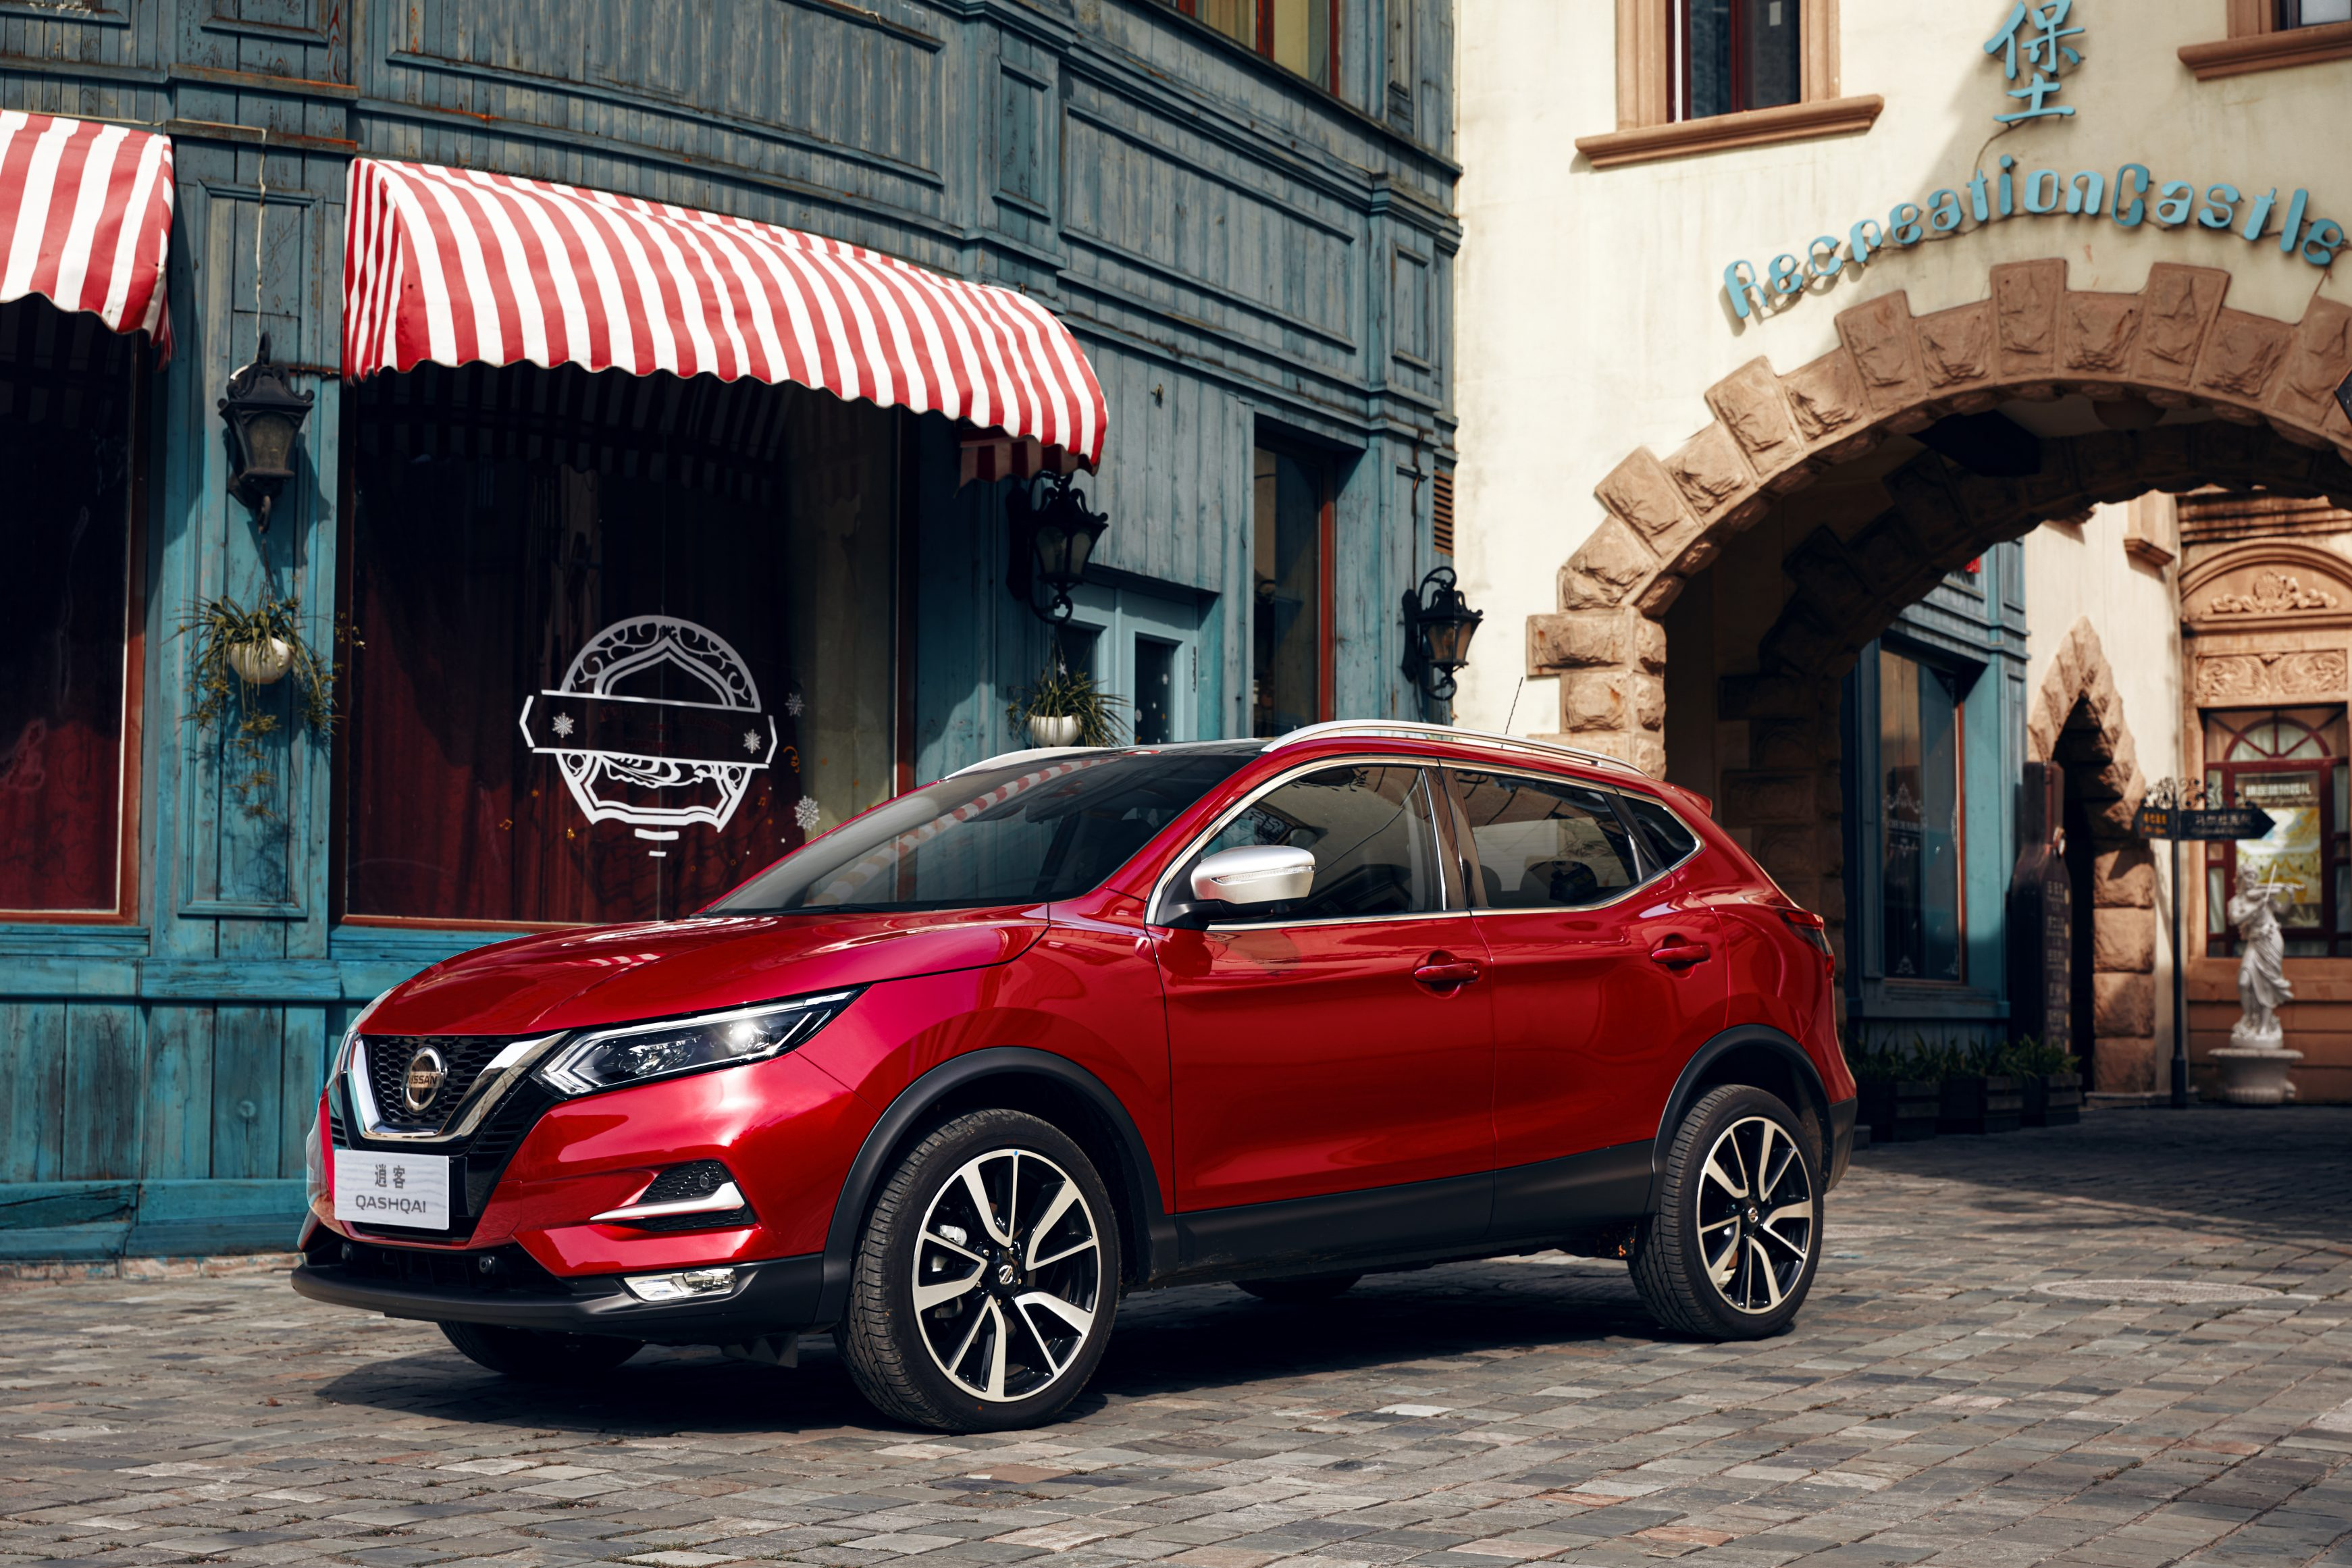 Best-selling cars in the UK - Nissan Qashqai